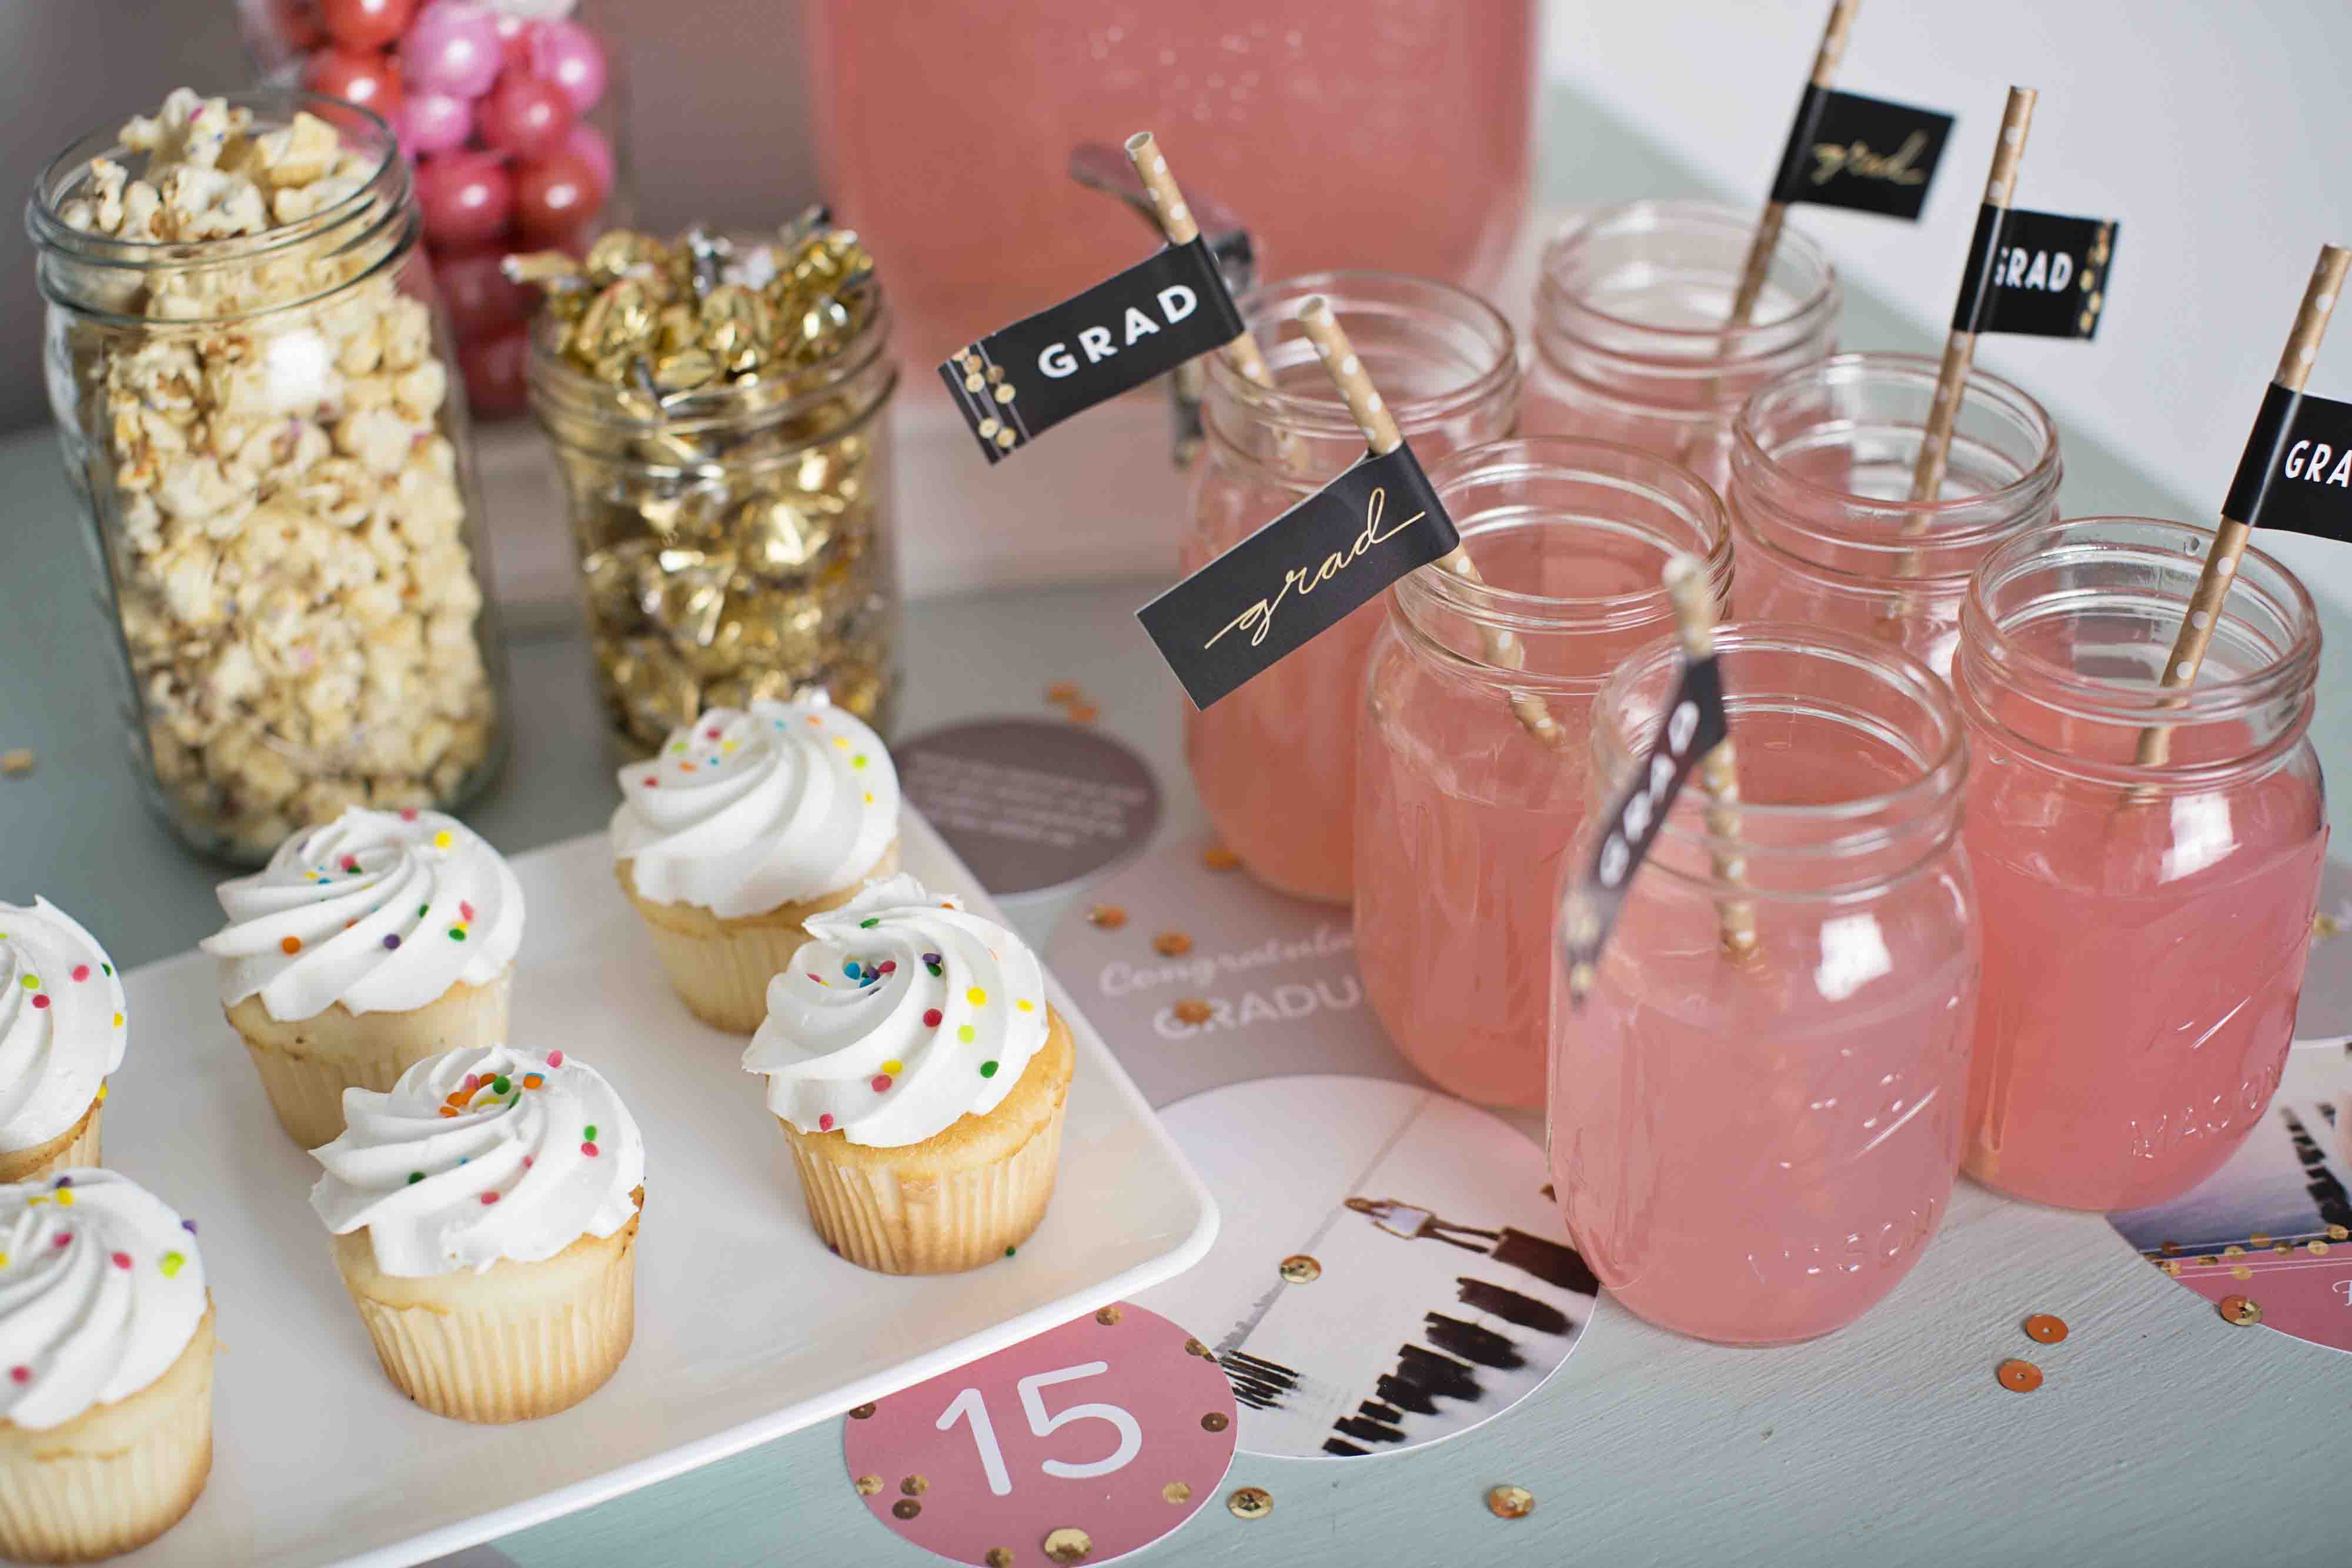 sequin-inspired graduation party ideas | pear tree blog